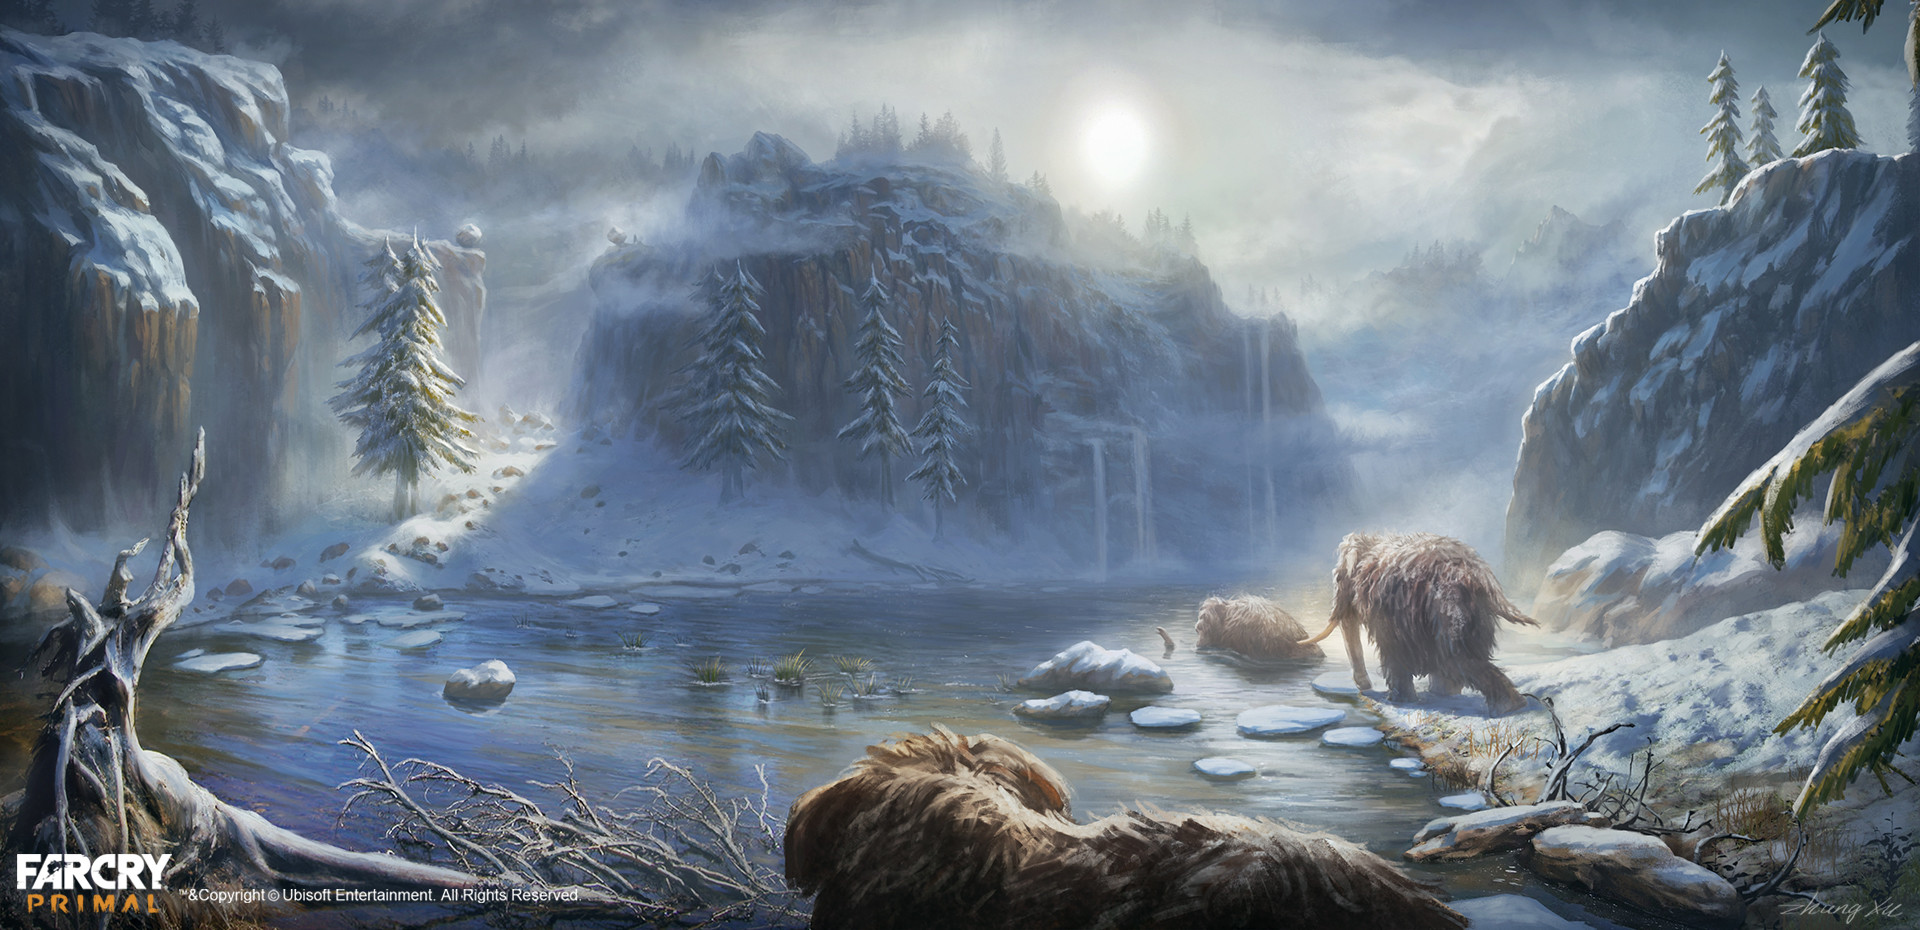 Far Cry Primal Concept Art By Xu Zhang 73 Escape The Level